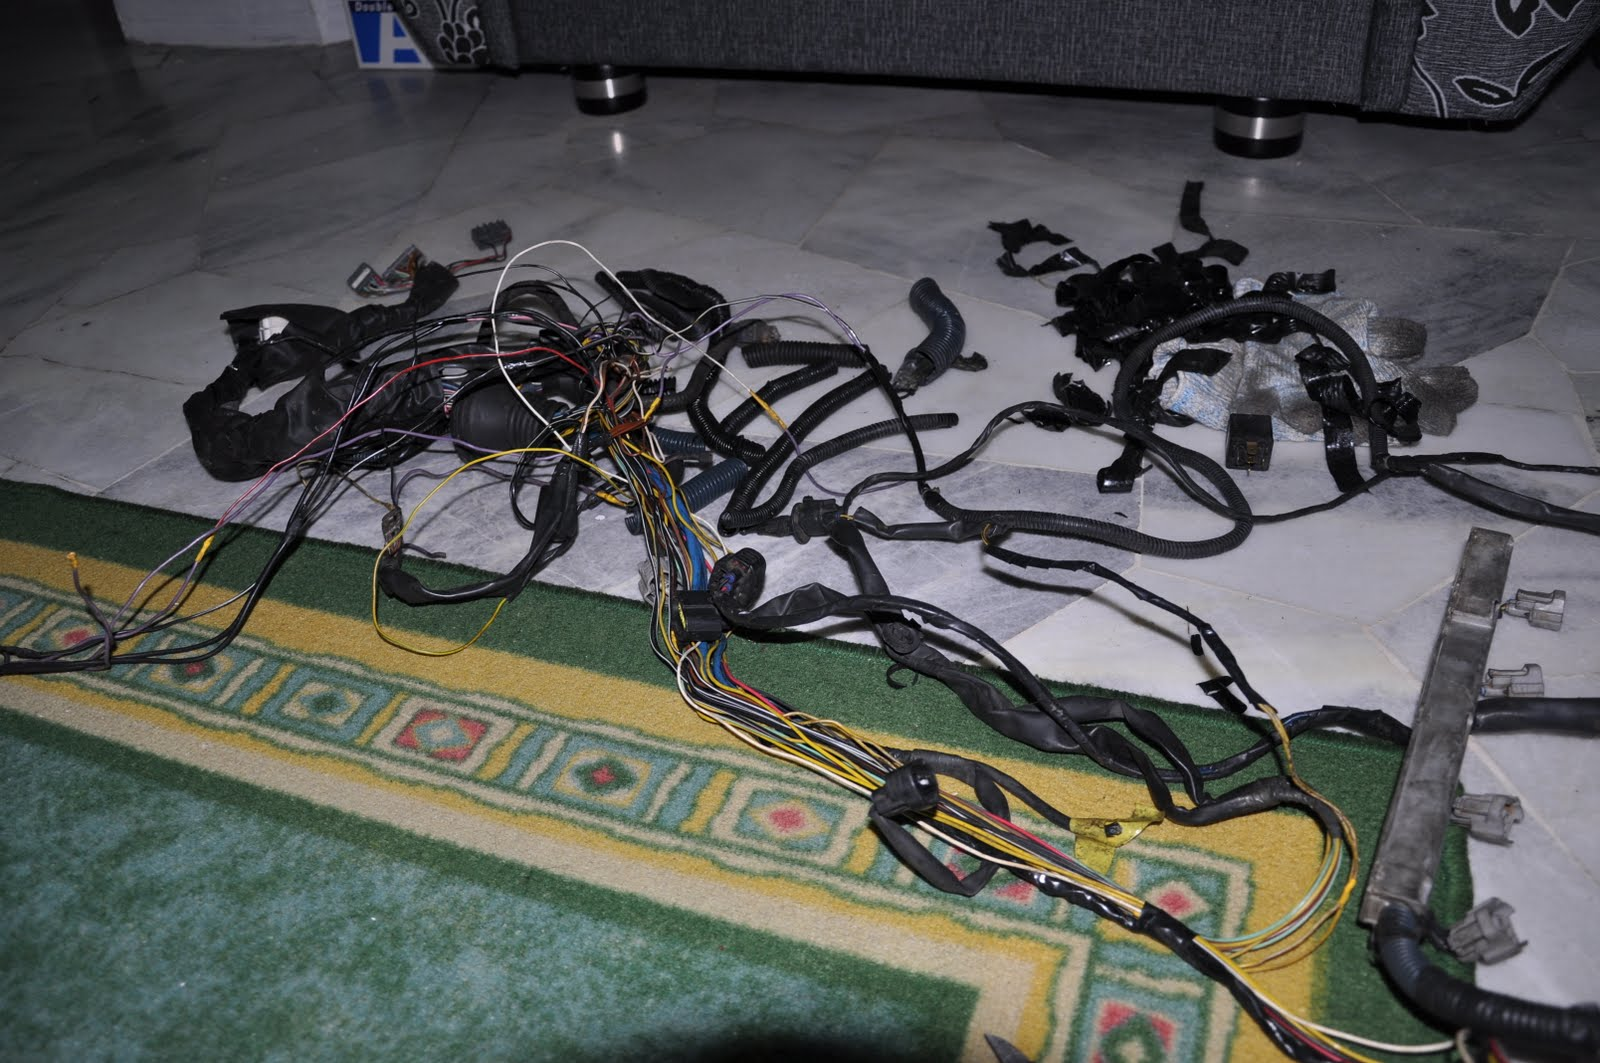 Rnr Autosport Vehicle Wiring And Engine Management Tuning 4age Harness Shown Here Is The 4ag 20 Valve Wiringalso Being Stripped Outremove Unnecessary Combined With Factory Ae86